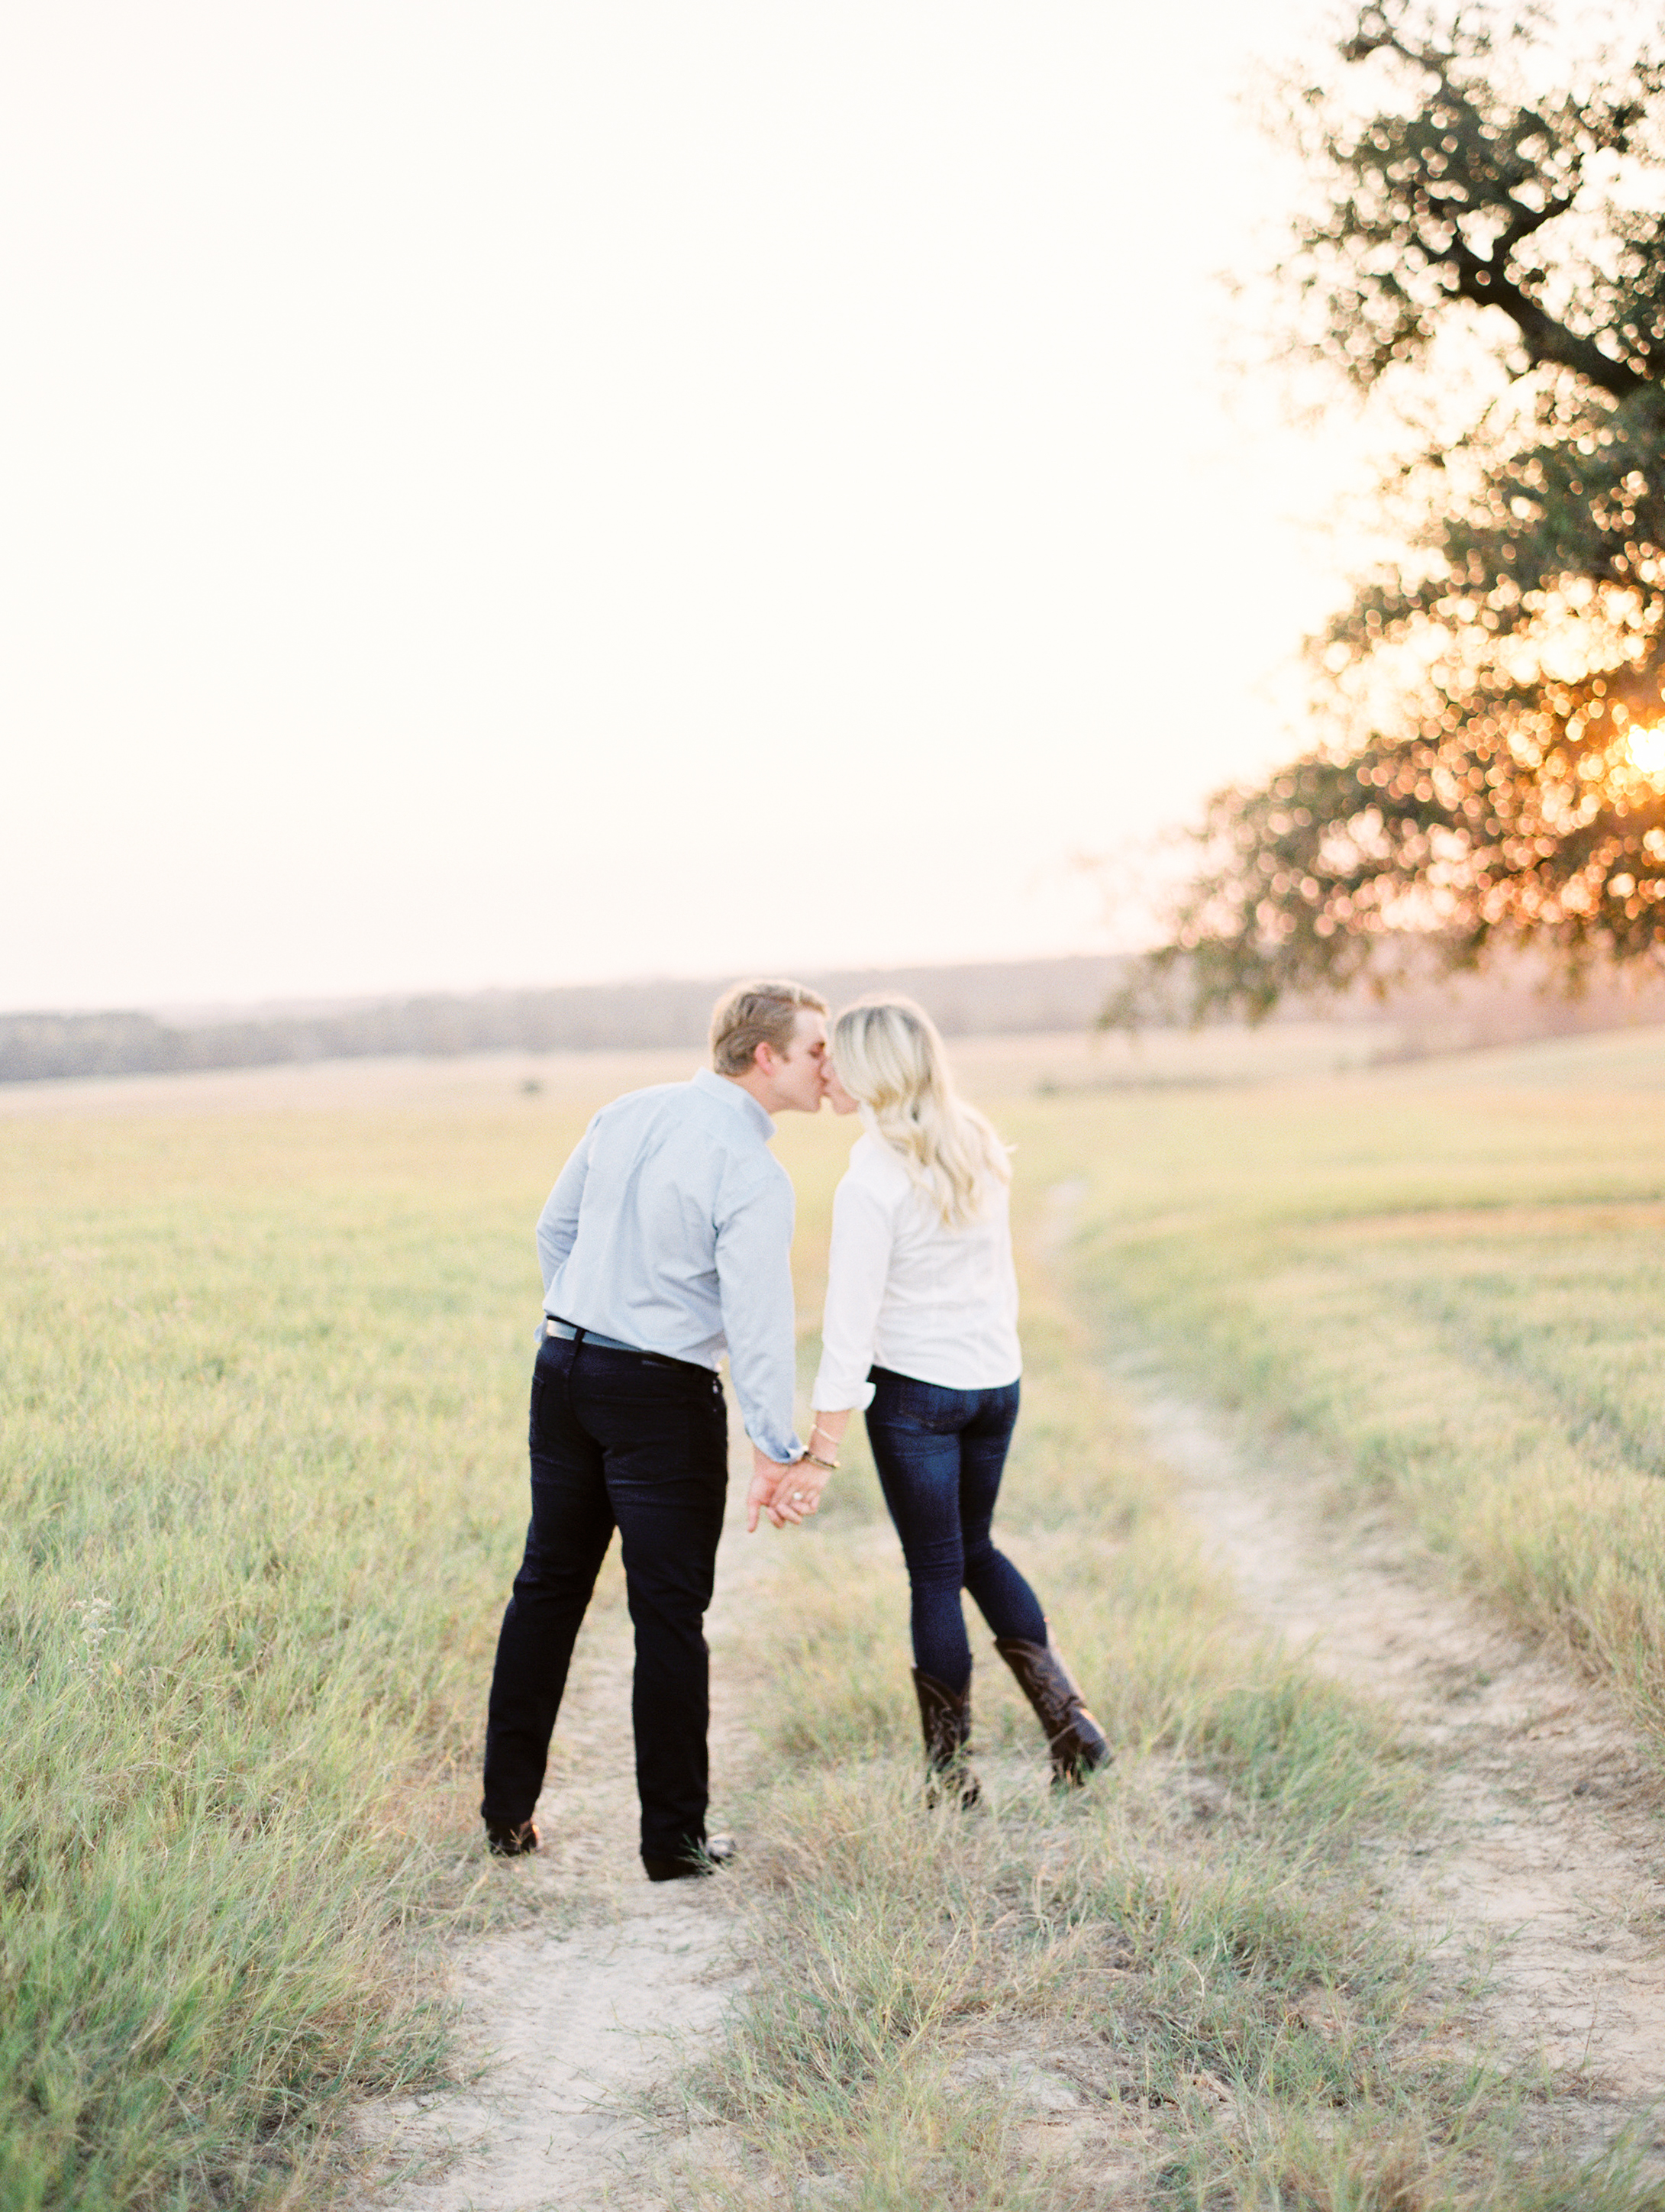 Lauren+John+Engaged+TX-16.jpg